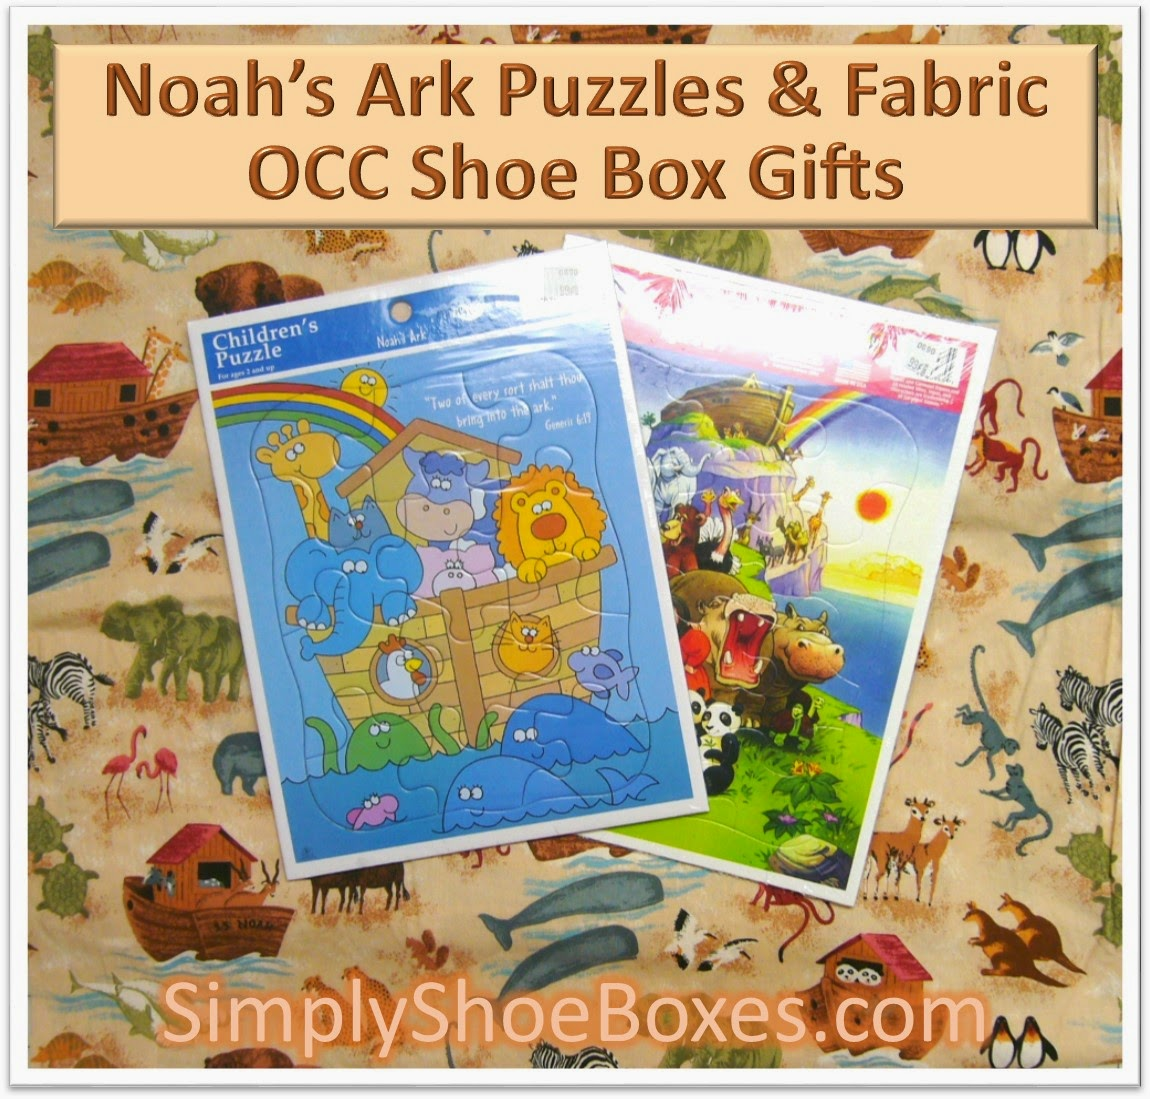 Noah's Ark puzzles and fabric